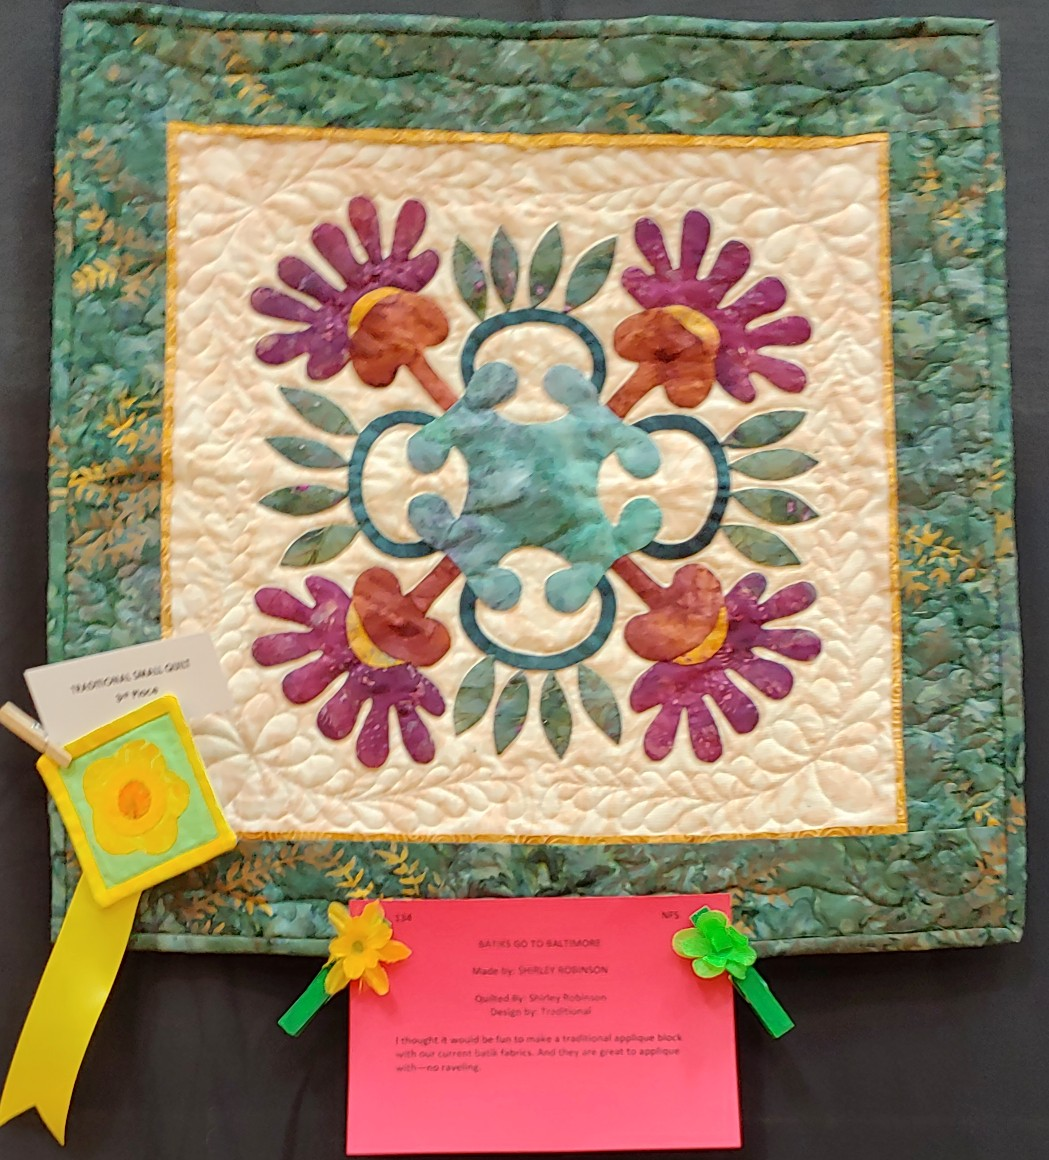 3rd Prize Traditional Small Quilt